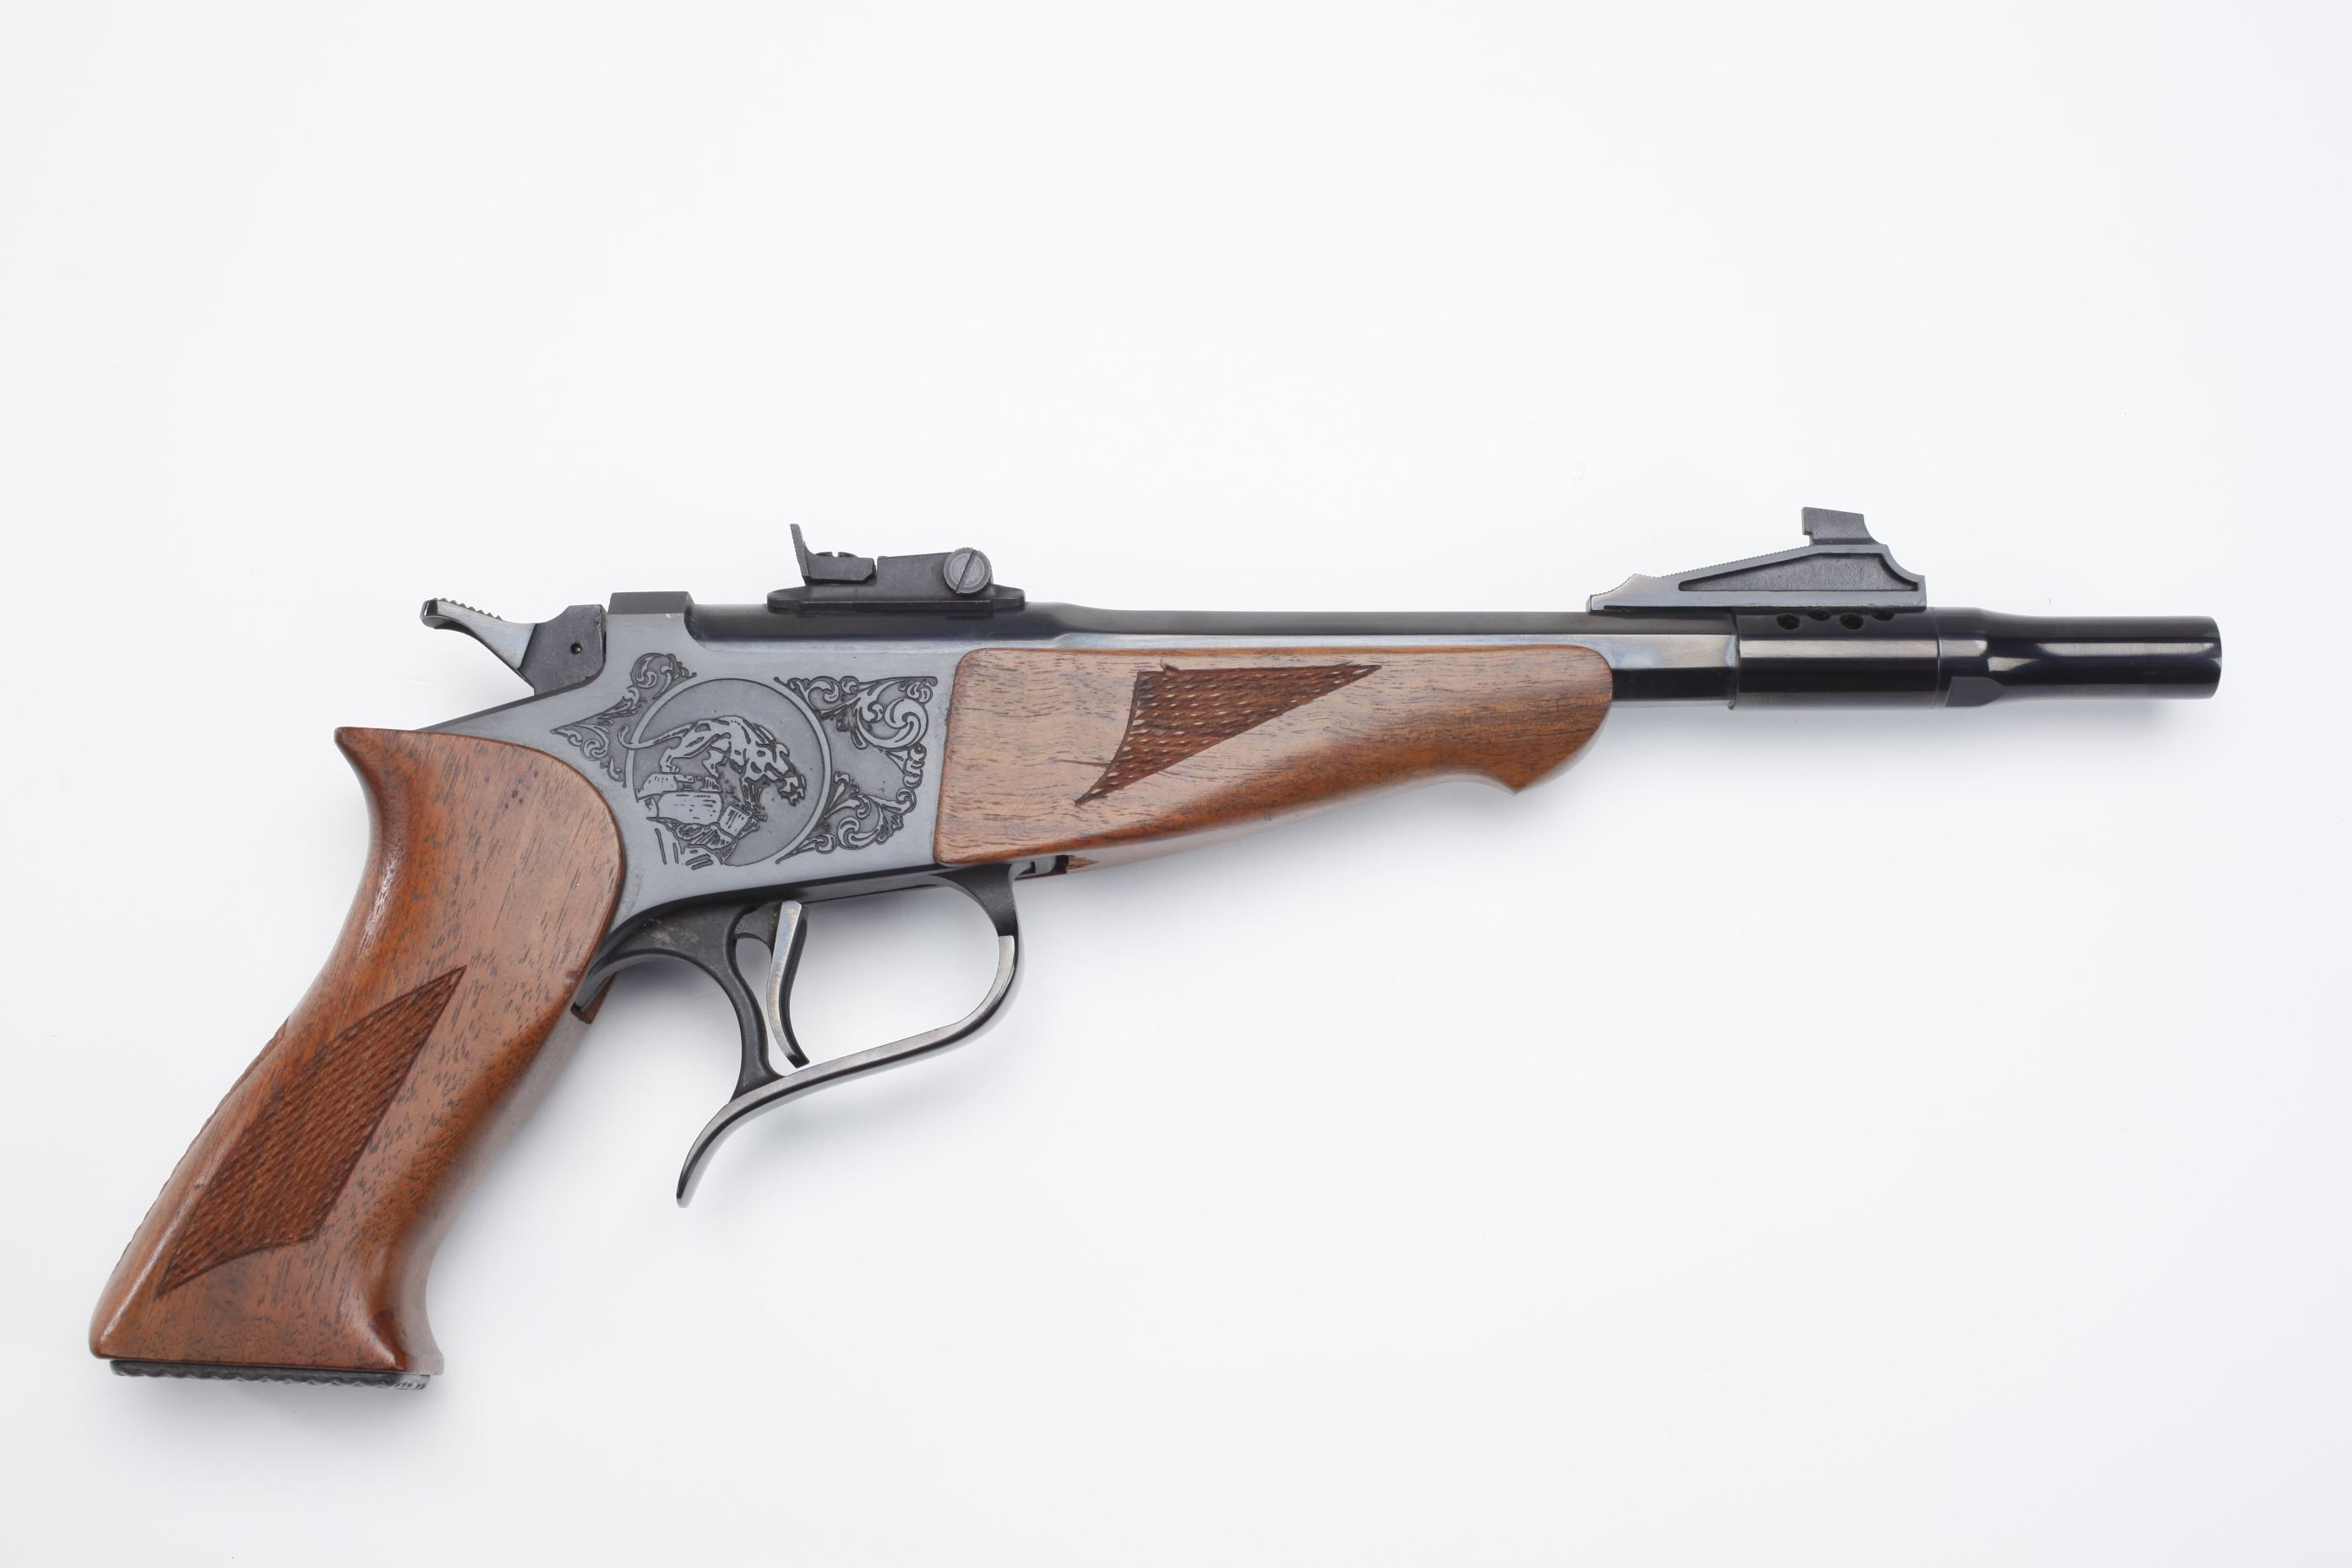 Thompson/Center Arms Contender Single Shot Pistol